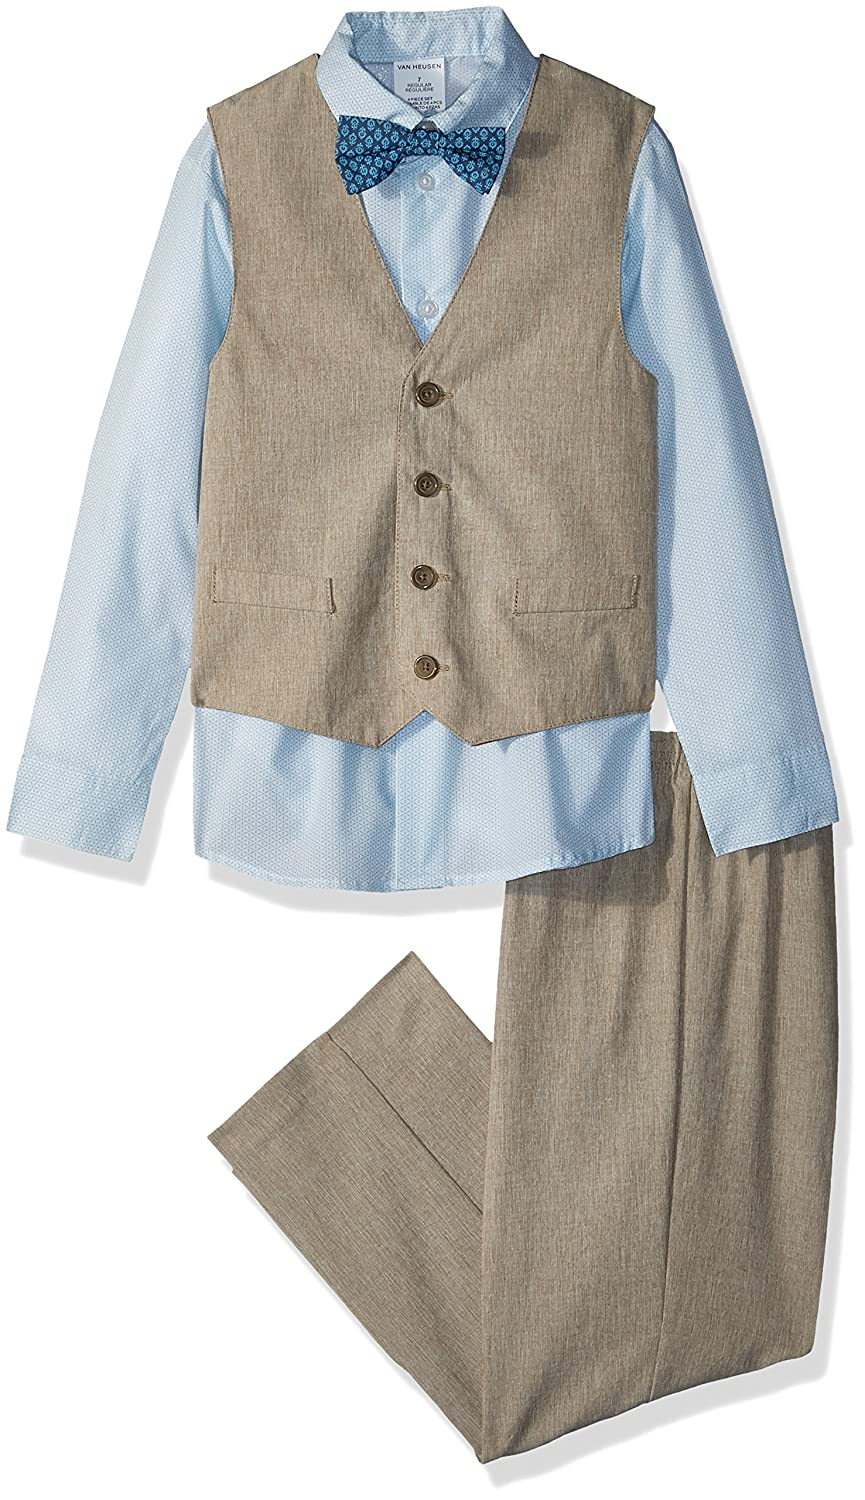 Victorian Kids Costumes & Shoes- Girls, Boys, Baby, Toddler Van Heusen Boys Little 4-Piece Formal Bow Tie Vest Set $40.50 AT vintagedancer.com